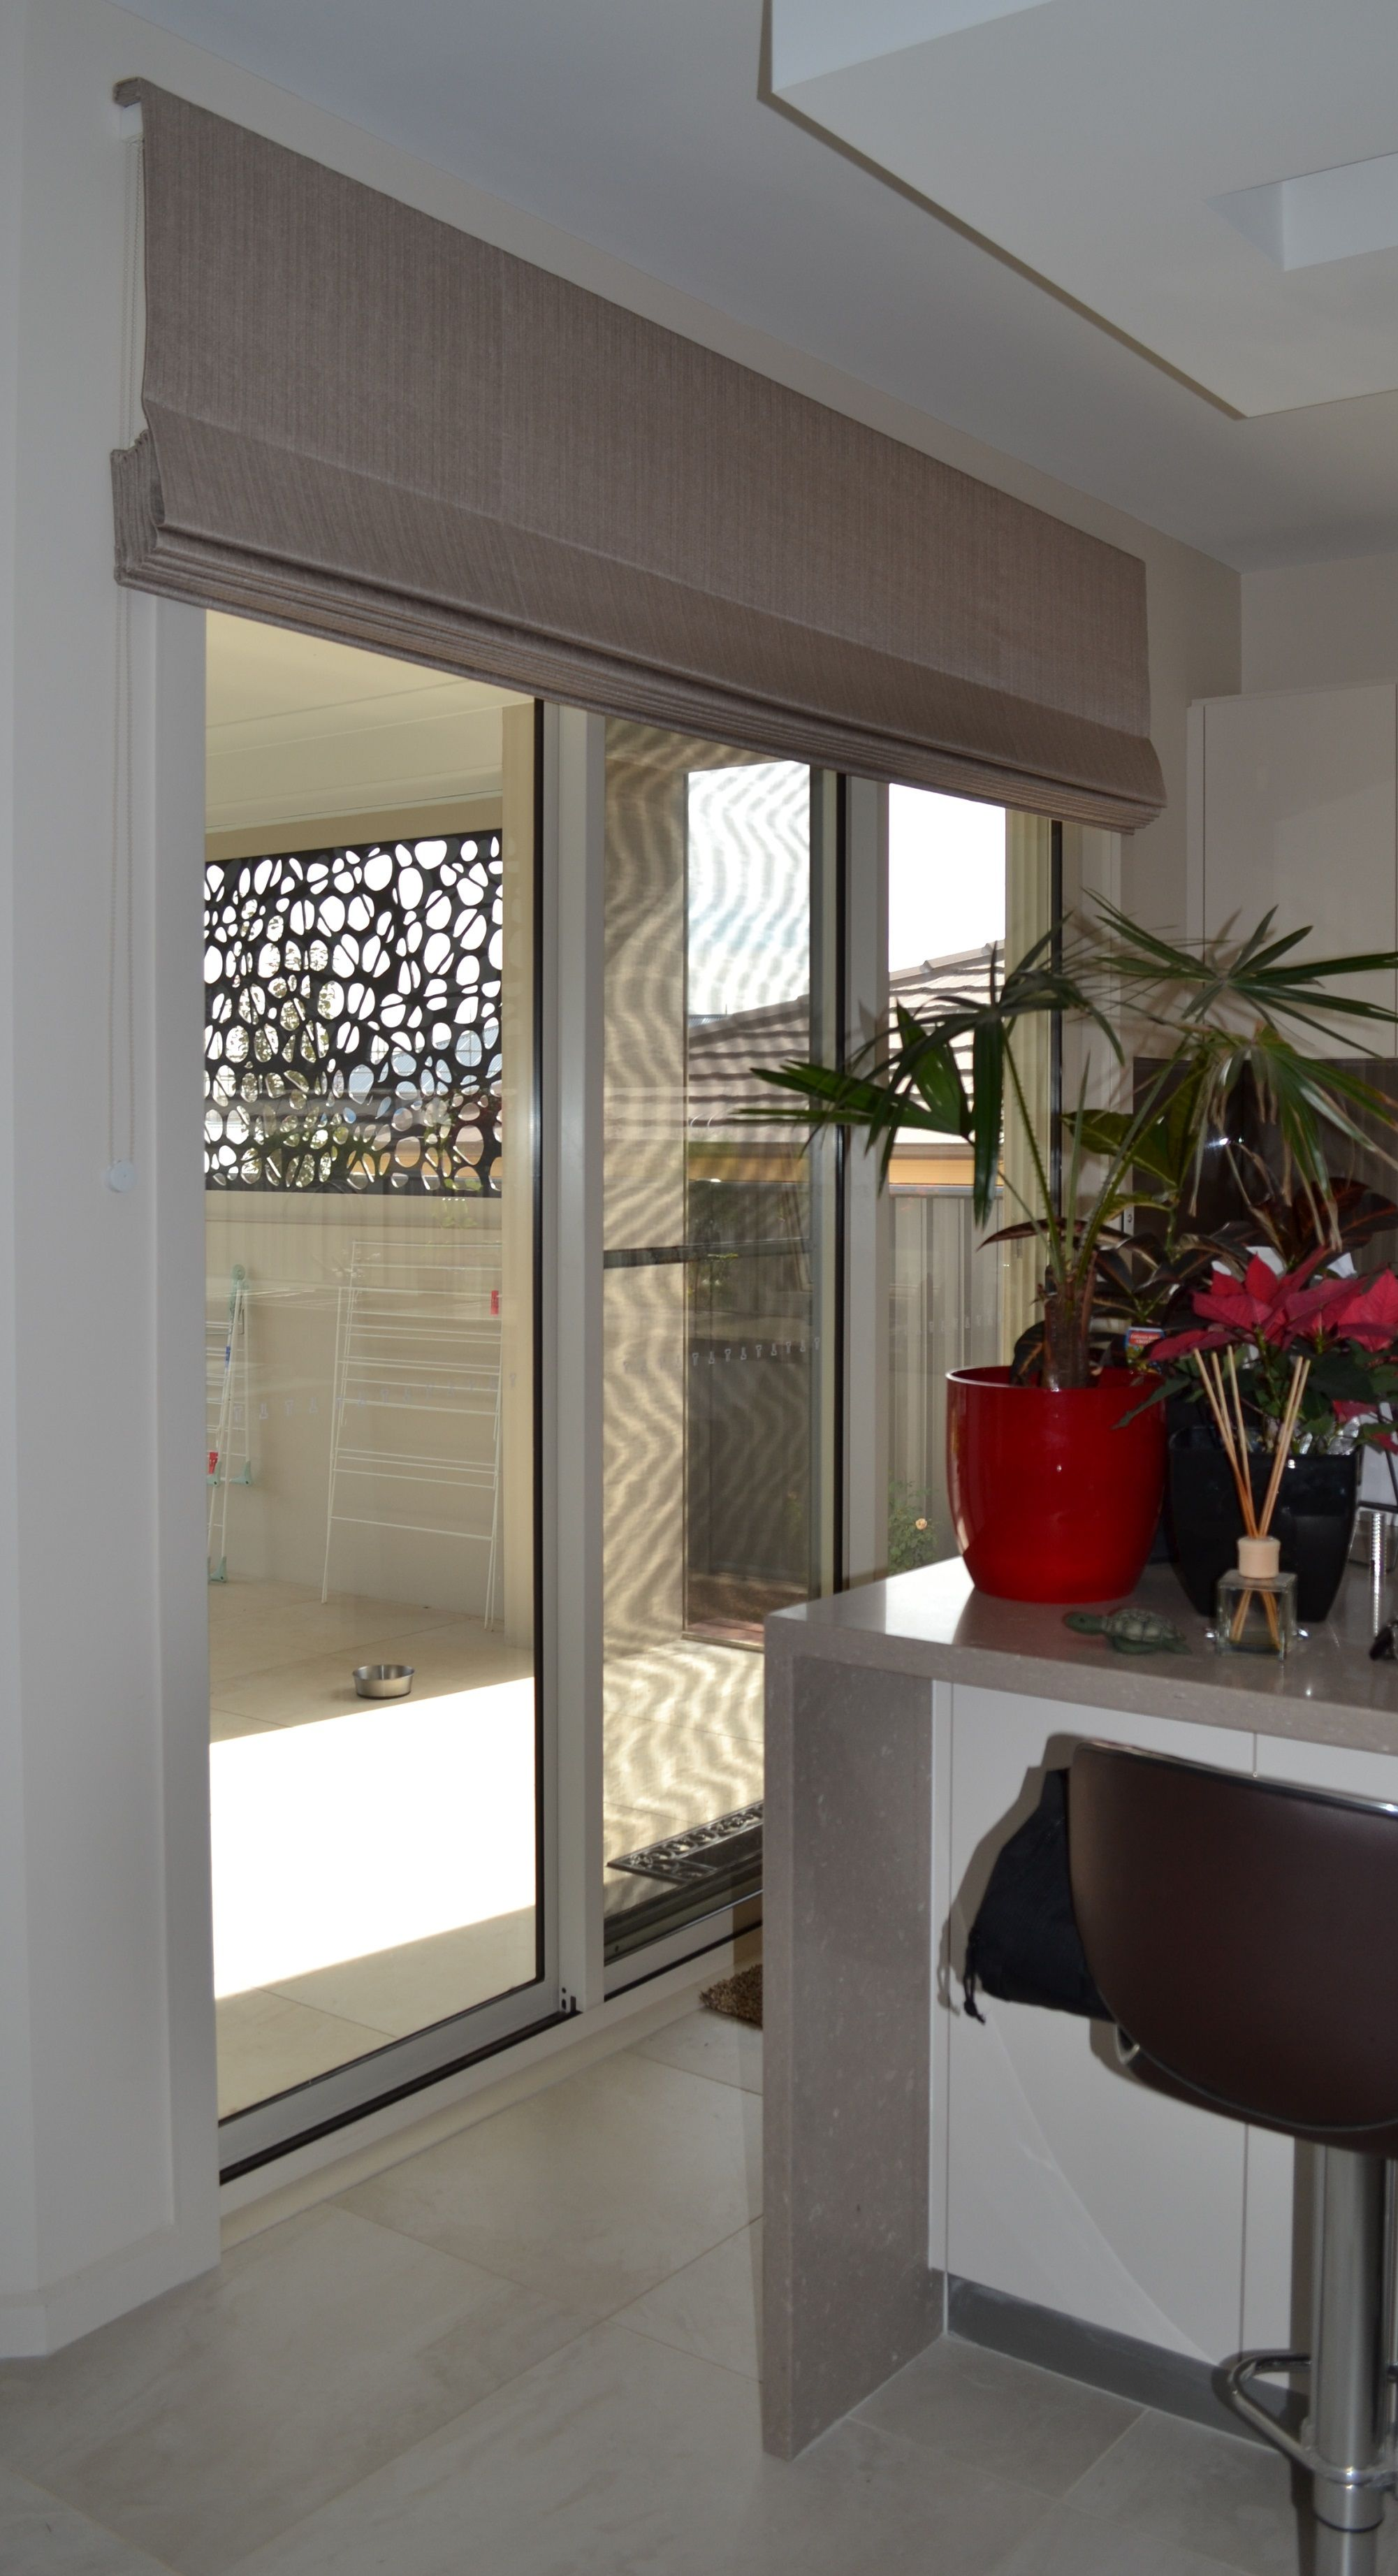 Roman Blinds Can Be Made Up To 3mtrs Wide With A Headrail System Sliding Door Shades